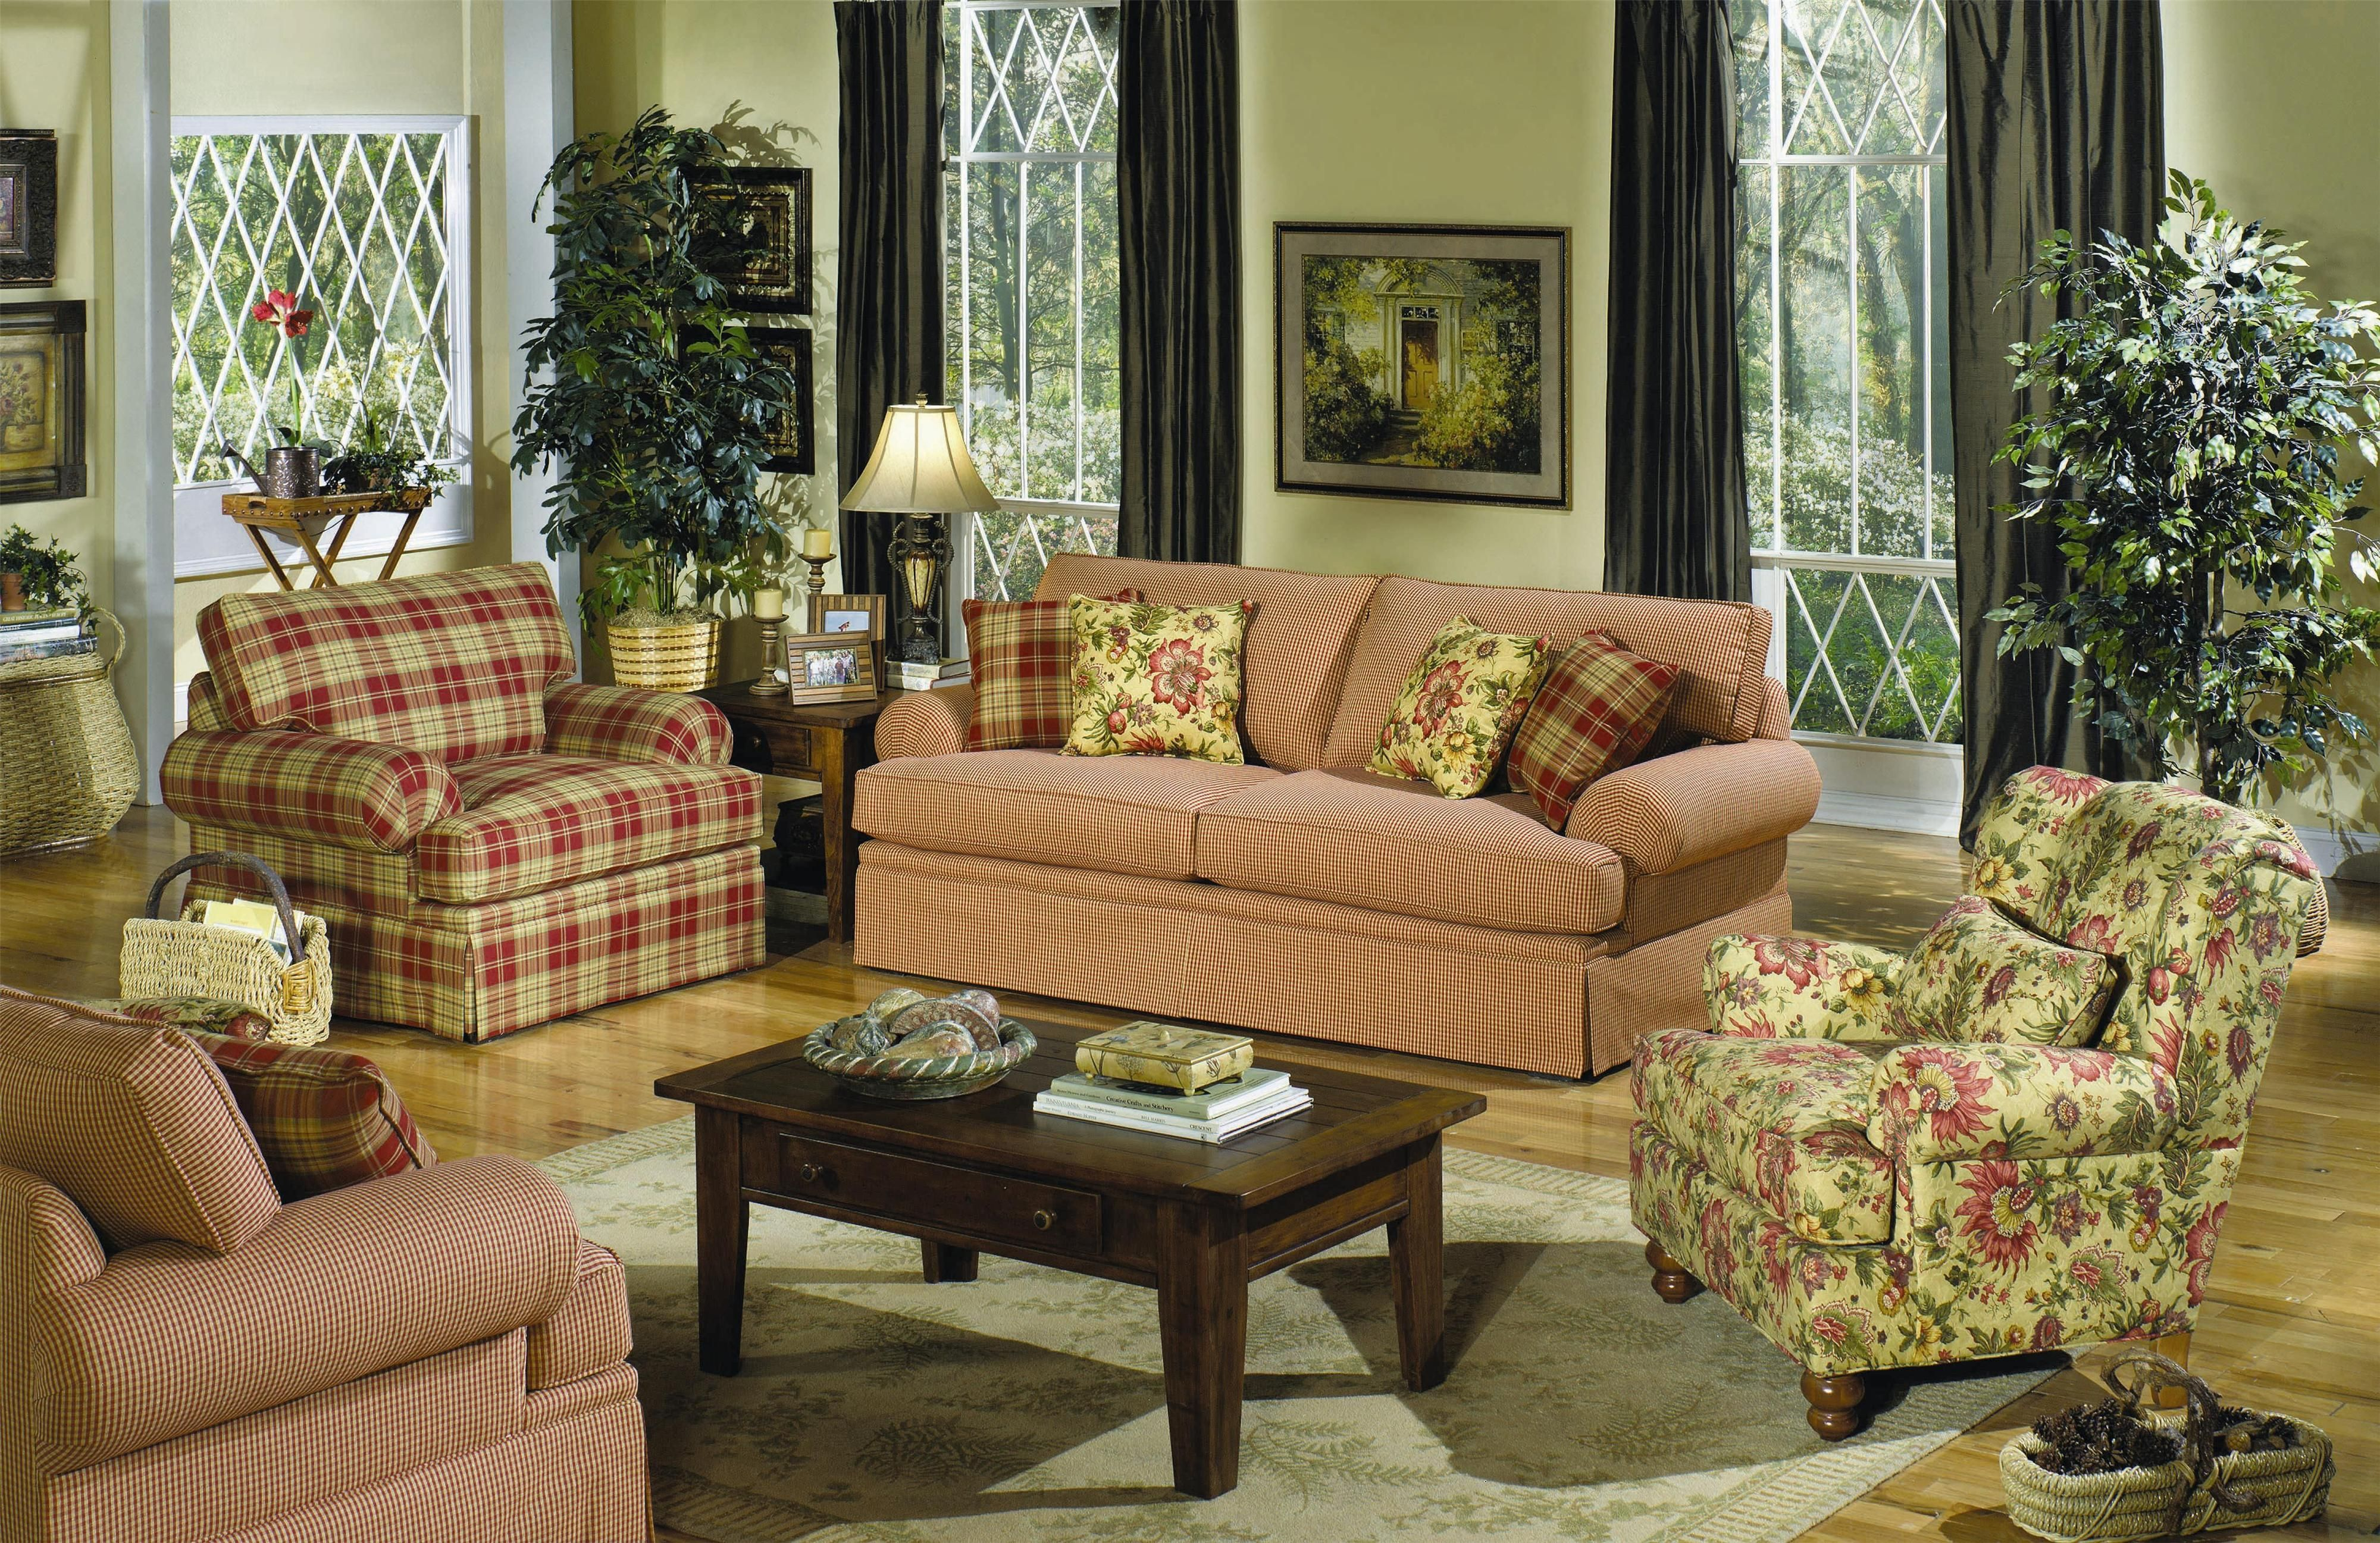 10+ Stunning Plaid Living Room Furniture